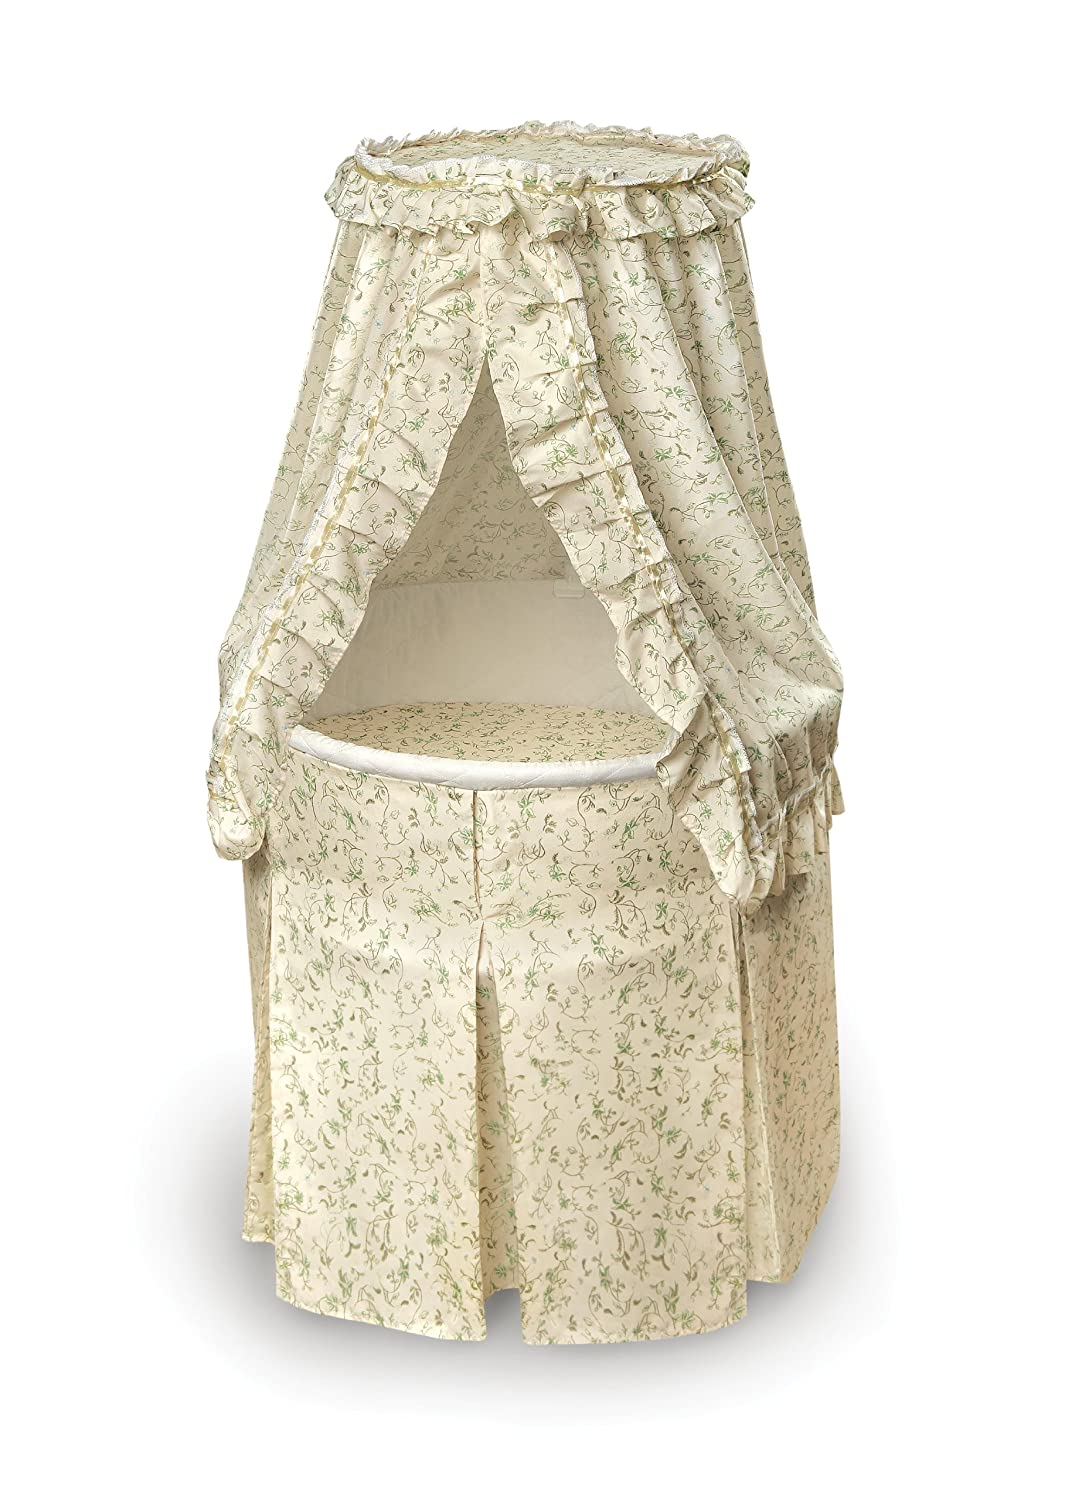 Empress Round Baby Bassinet with Bedding, Pad, and Storage